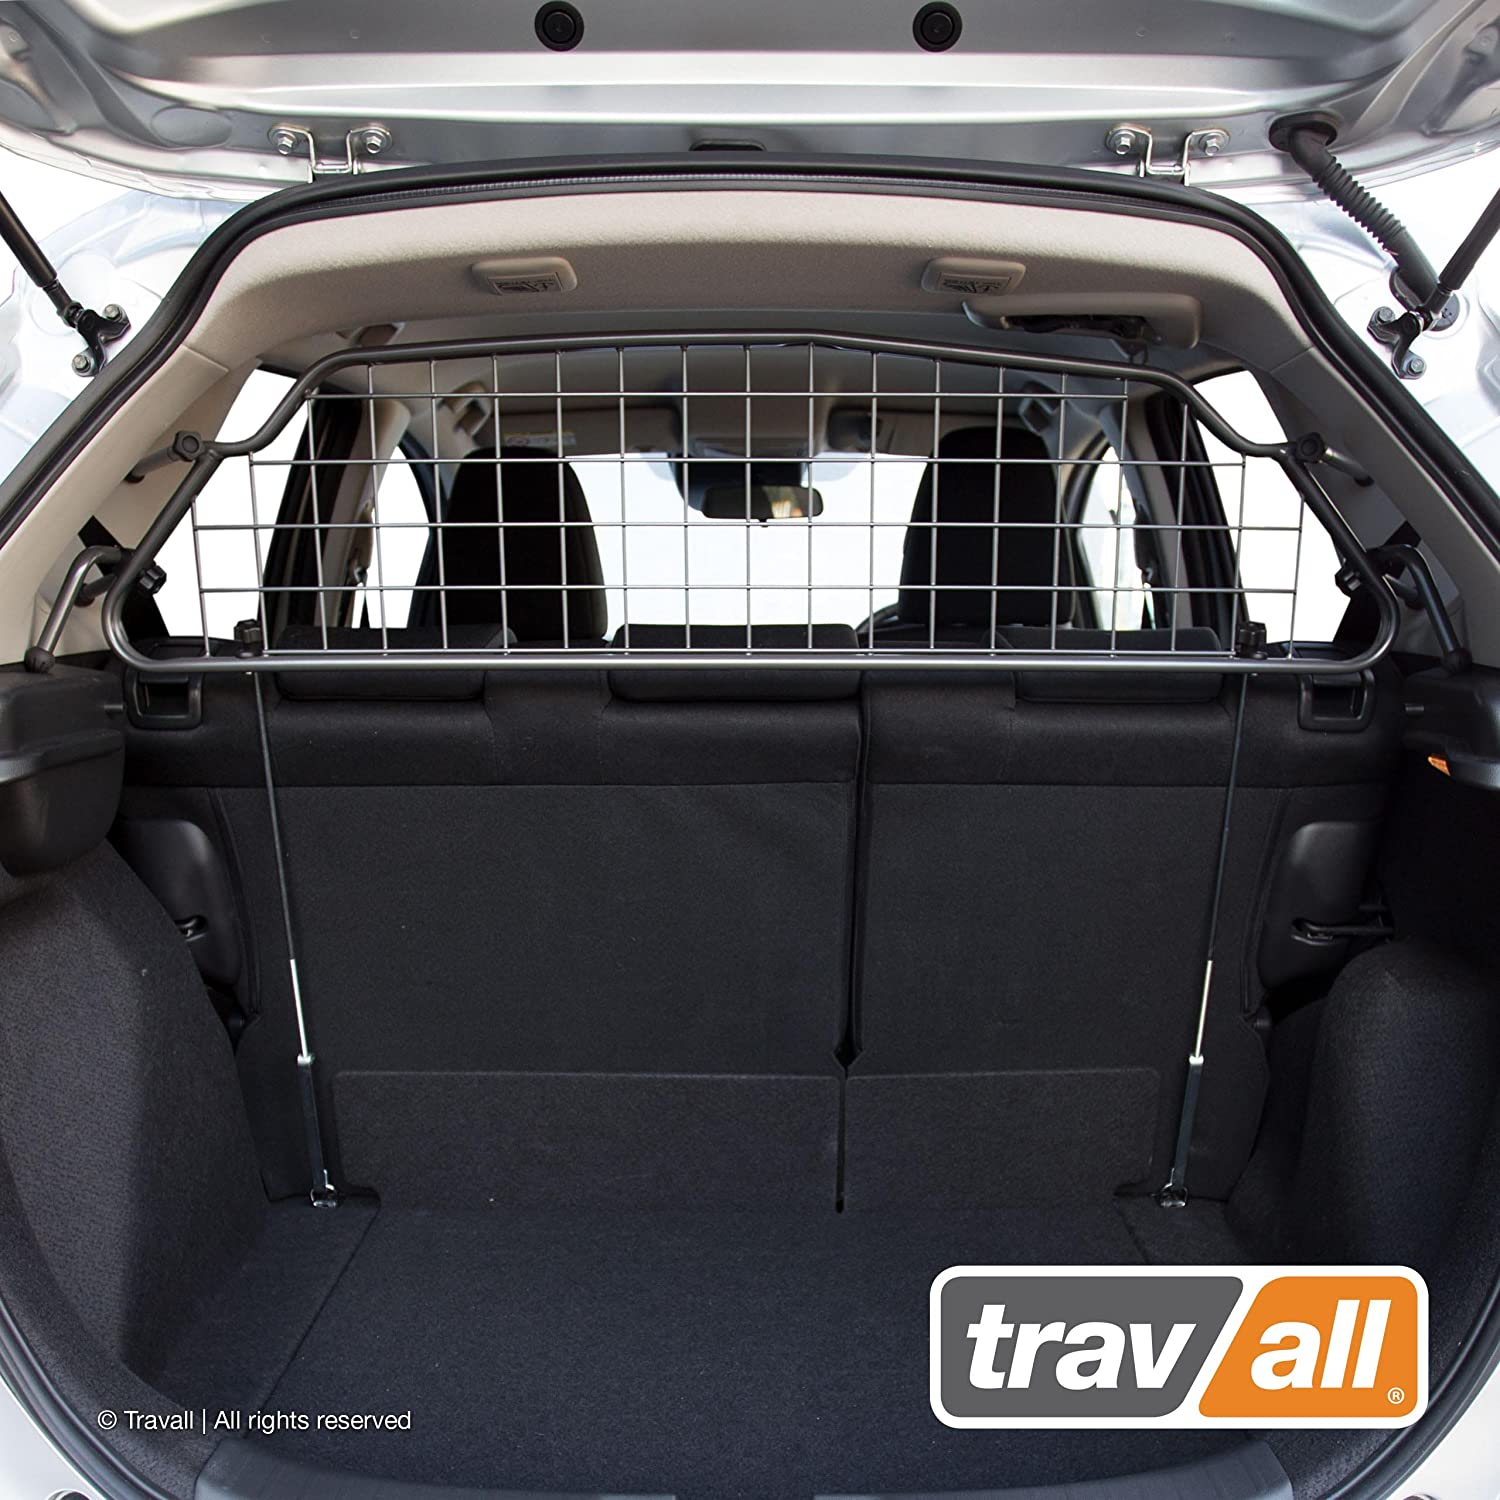 Travall Guard Compatible with Honda Fit 2013-Current TDG1498 – Rattle-Free Steel Pet Barrier